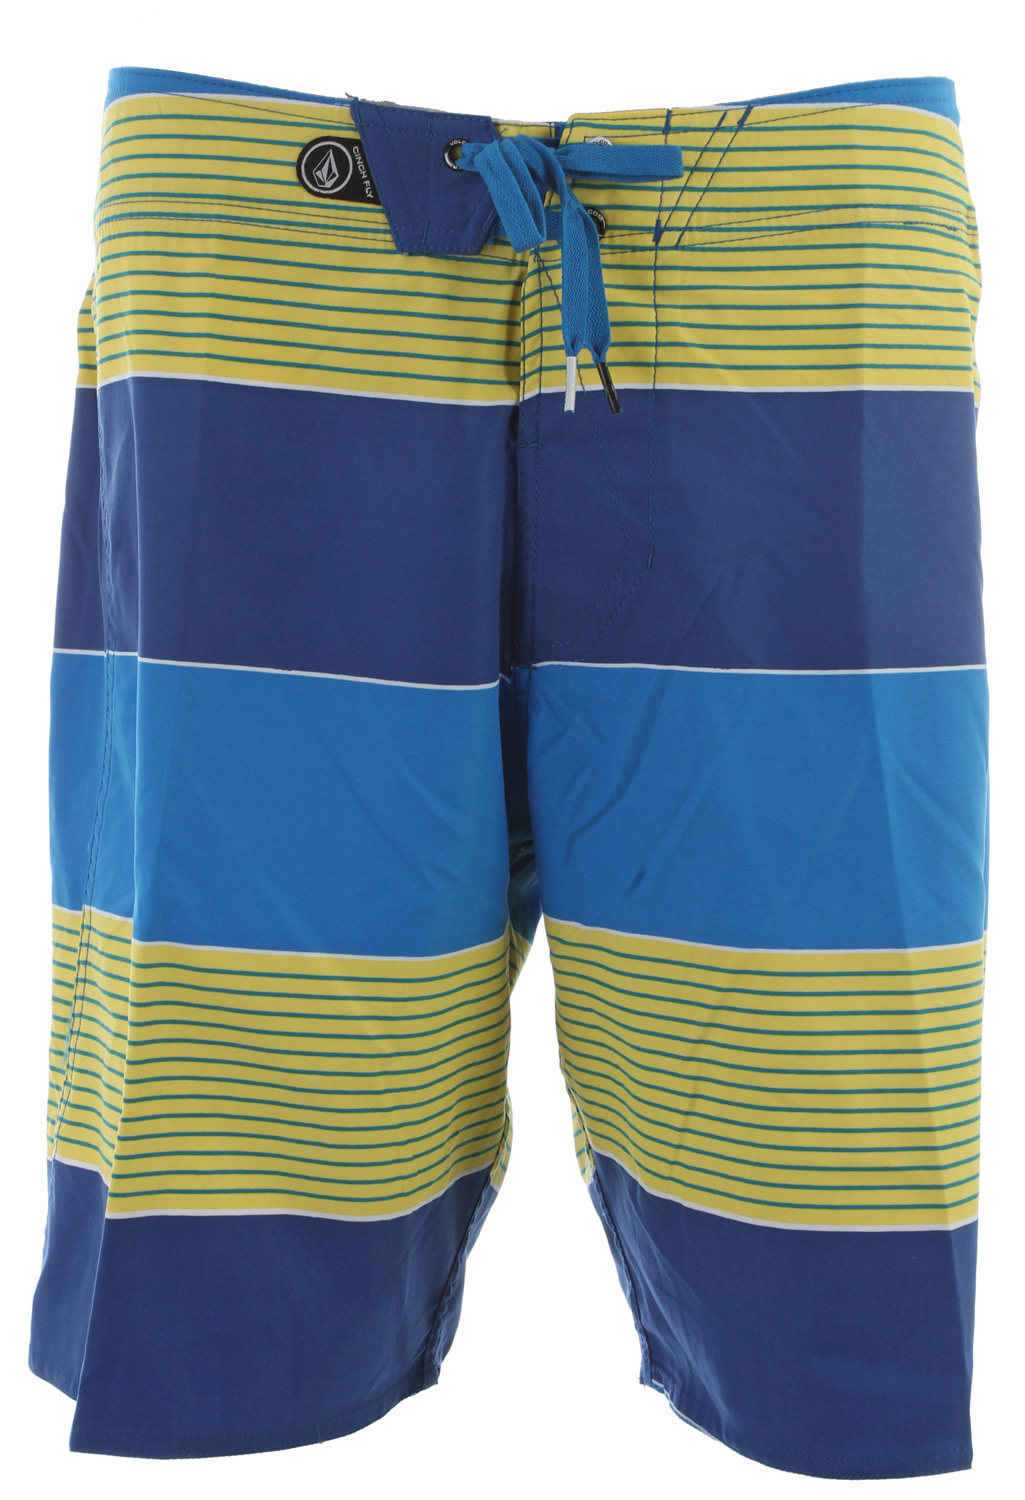 "Skateboard Key Features of the Volcom Maguro Stripe Boardshorts: 20"" Outseam boardshort Volcom 2 way stretch Rubber Circle stone Back flap pocket Embroidered eyelet on pocket 100% Polyester 2 Way Mechanical Stretch Cinch Fly Technology - $31.95"